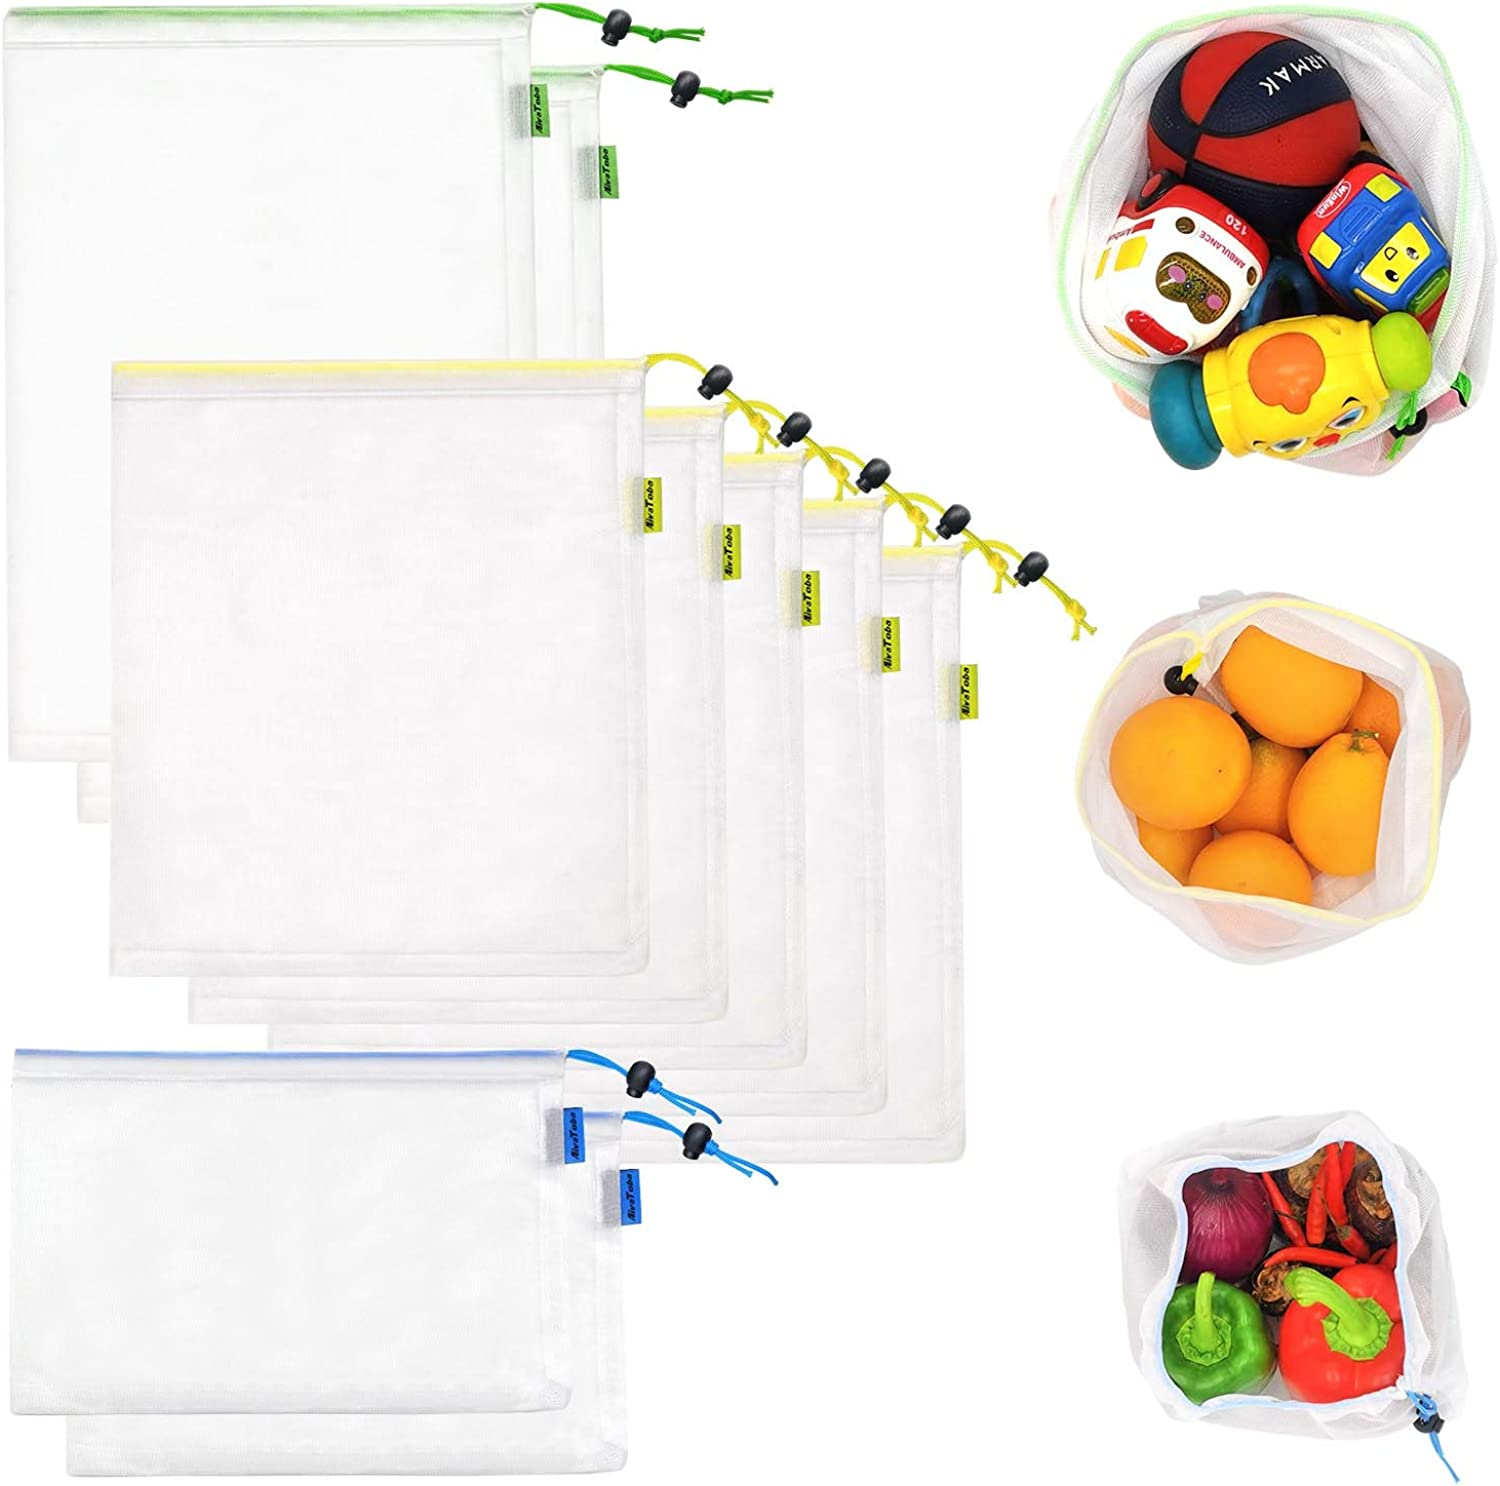 9 Pcs Reusable Produce Bags, 3 Sizes Washable Produce Mesh Bags with Drawstring for Grocery Shopping Storage Fruit Vegetable and Toys, Lightweight and See-Through